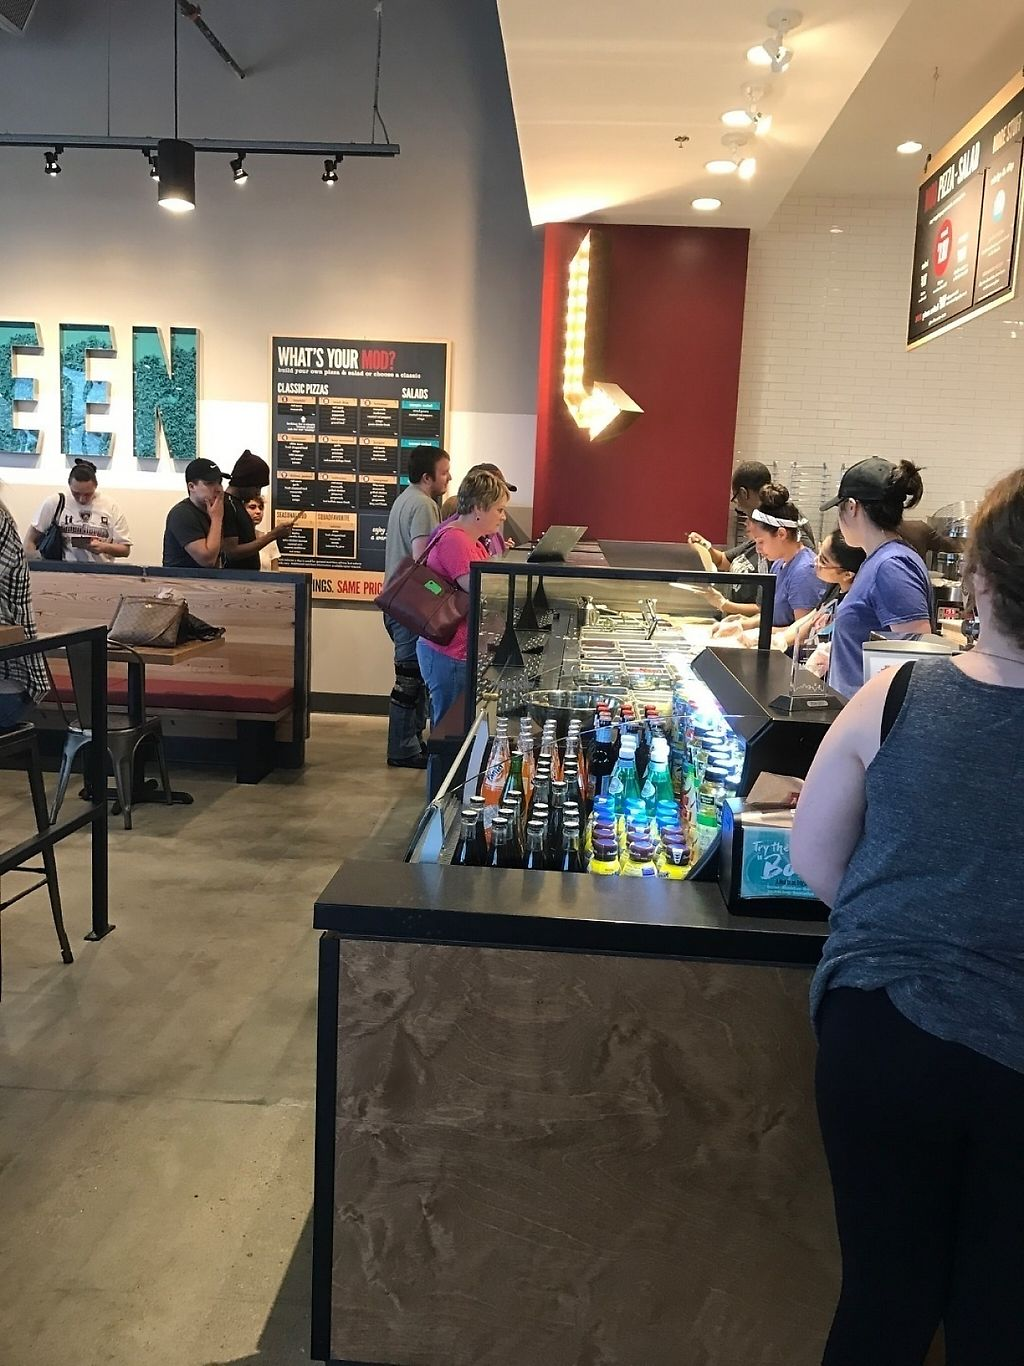 """Photo of Mod Pizza  by <a href=""""/members/profile/LeaMonika"""">LeaMonika</a> <br/>Build your own pizza <br/> February 12, 2017  - <a href='/contact/abuse/image/86984/226083'>Report</a>"""